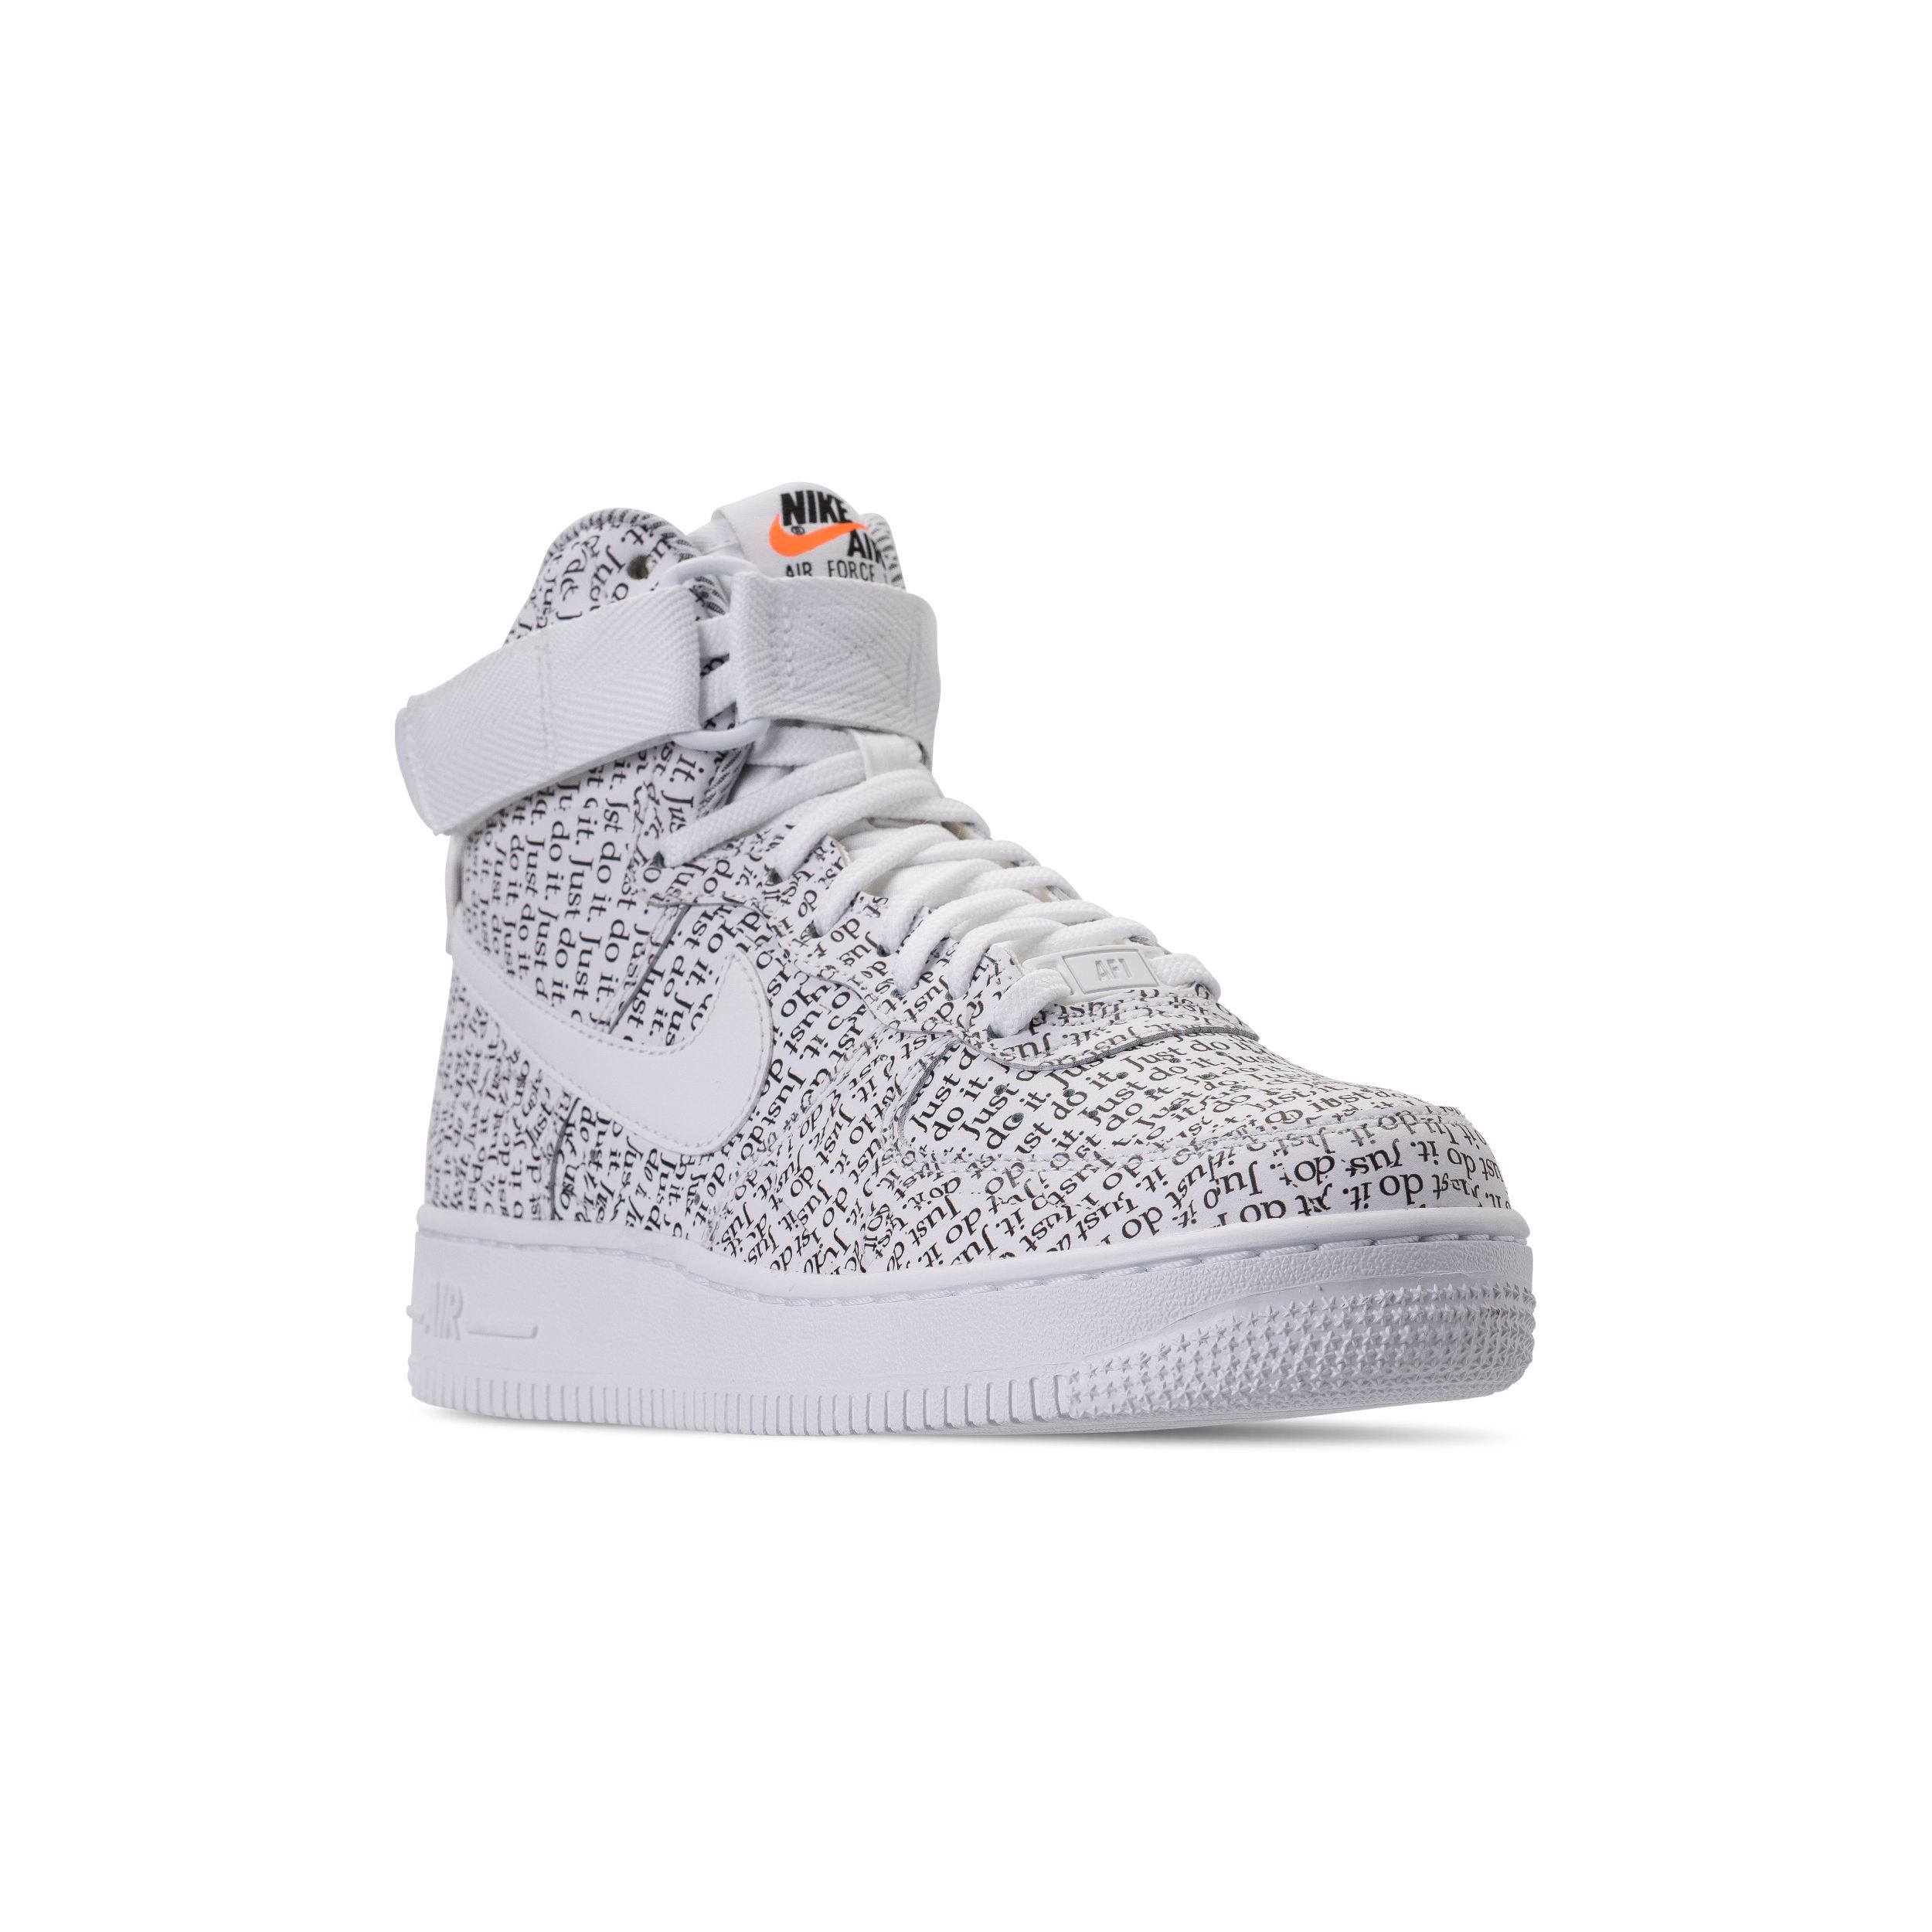 quality design feb3a 18442 The Nike Air Force 1 High 'Just Do It' Pack Releases This ...